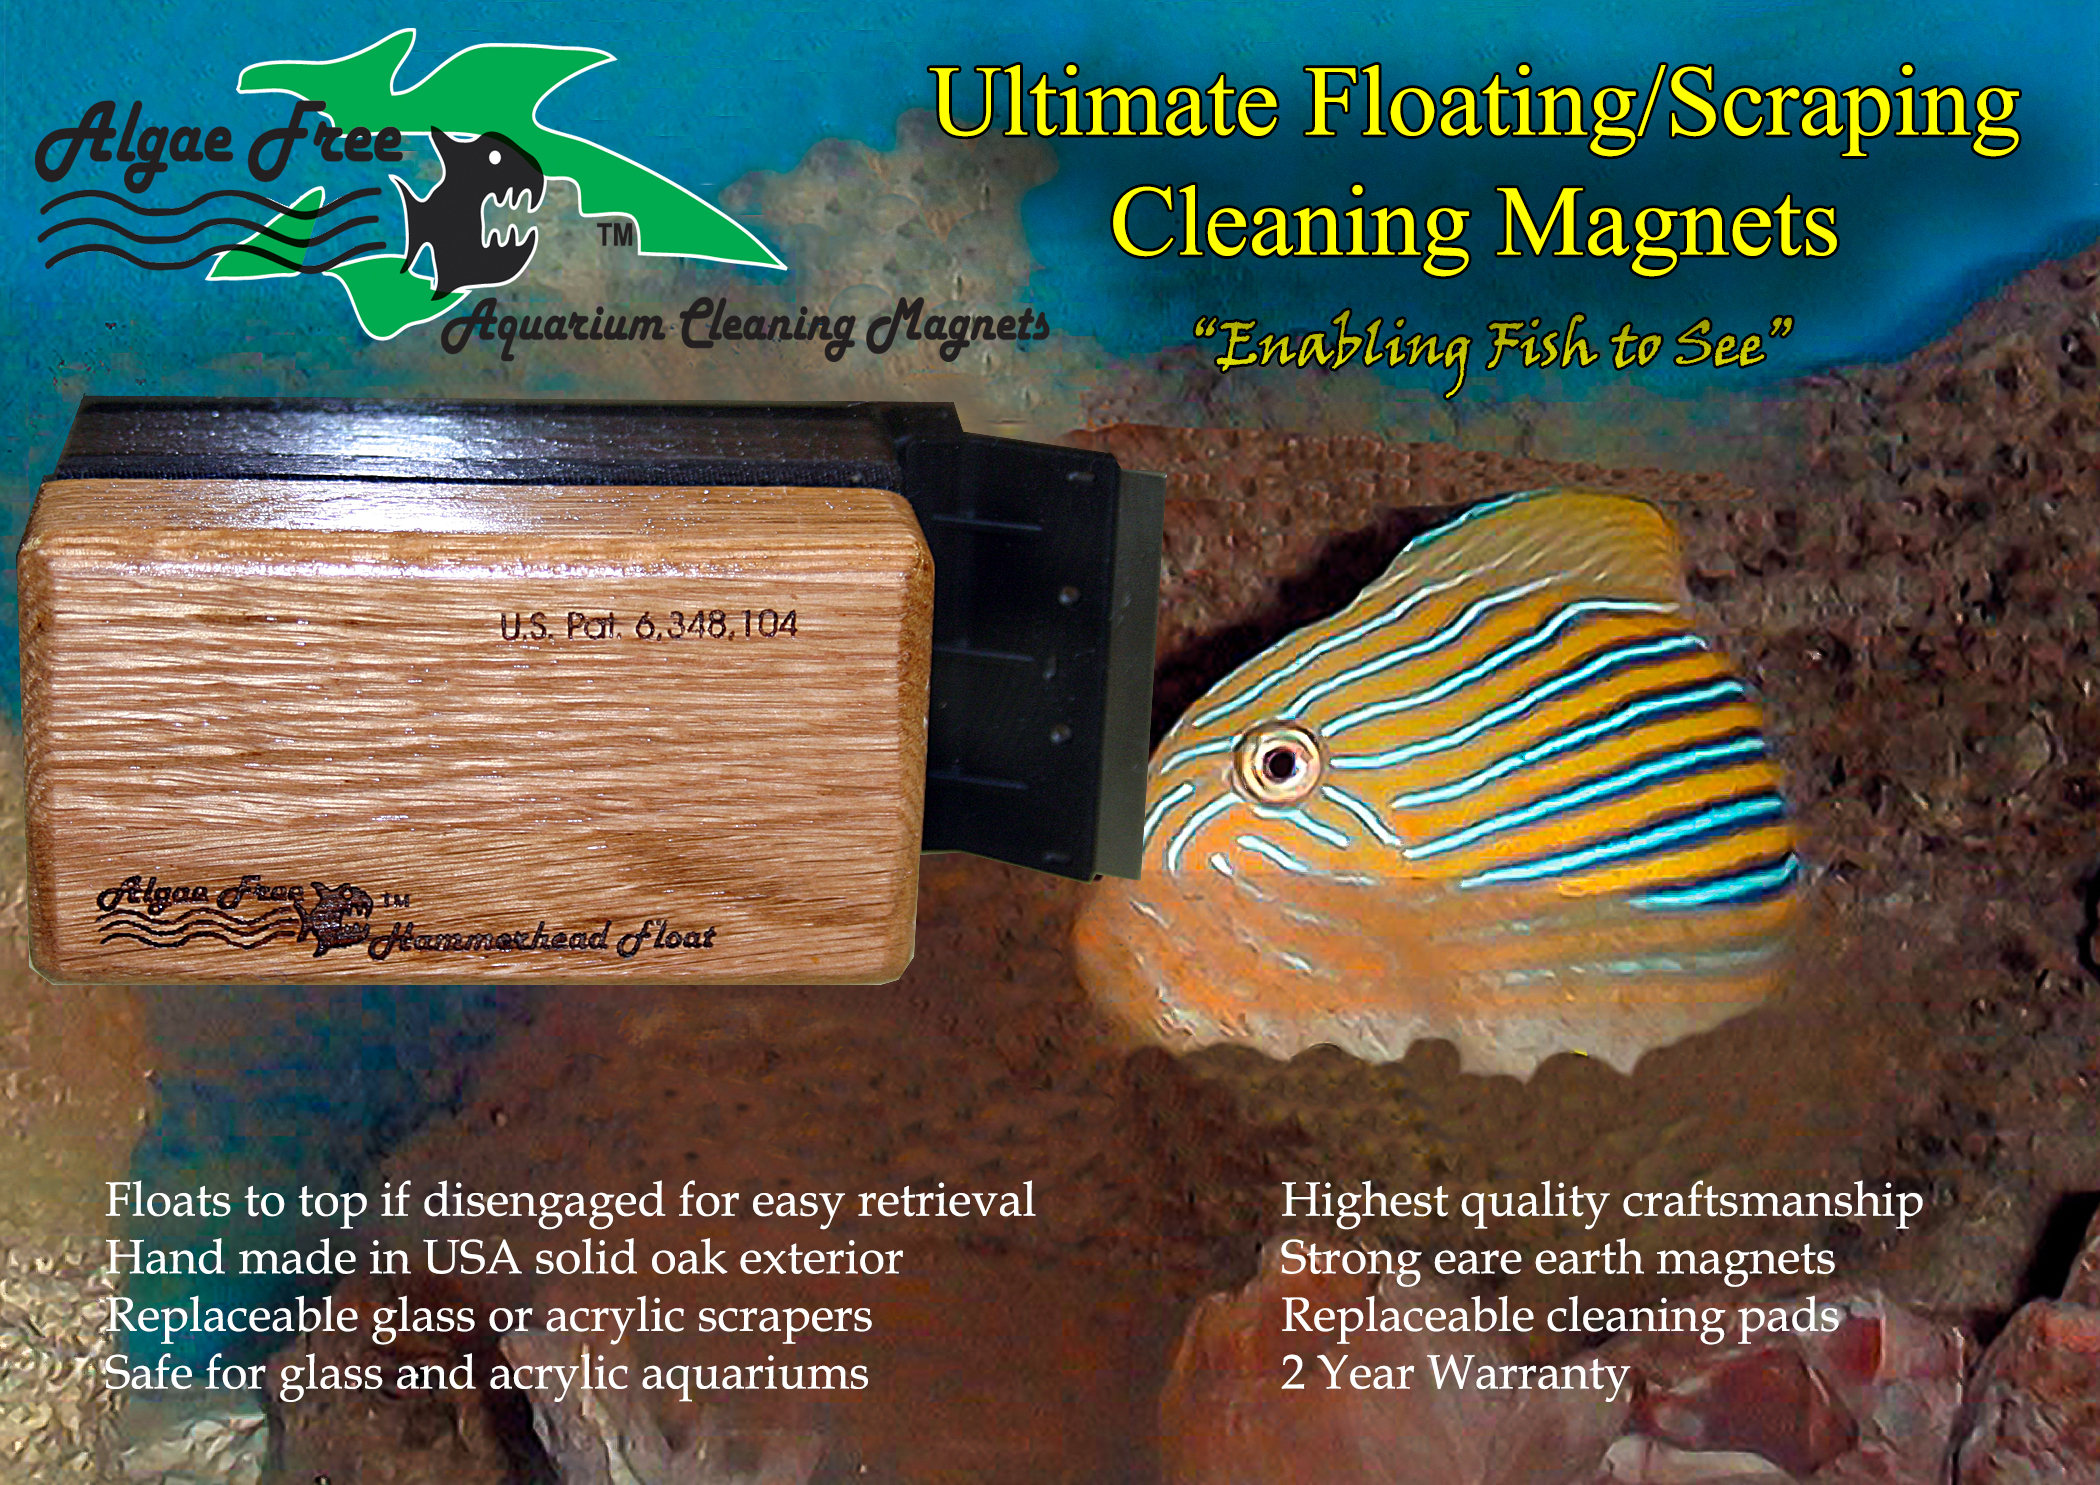 algae free aquarium cleaning magnets